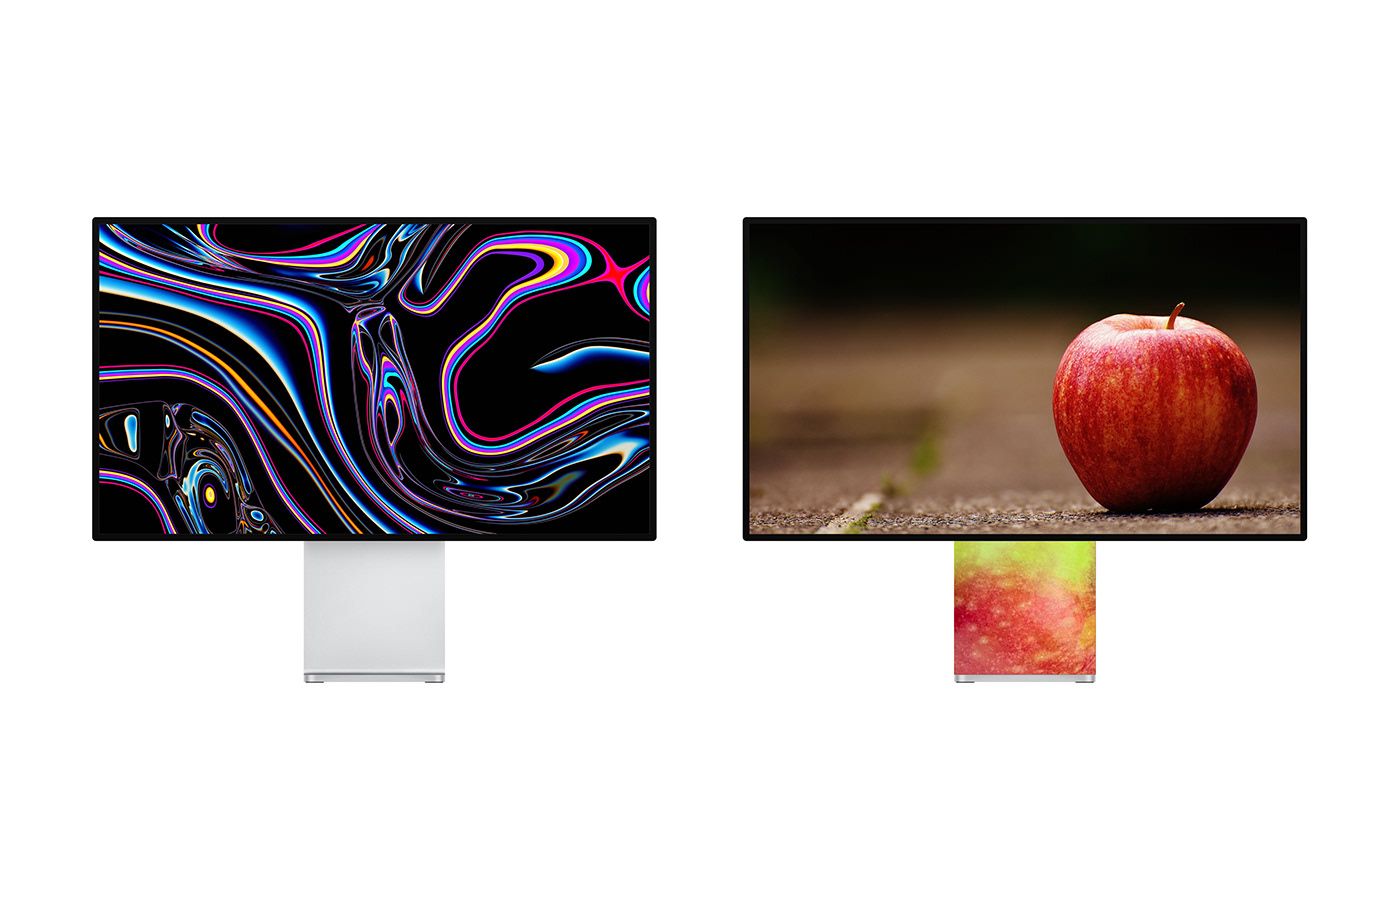 Apple colors apple design apple products apples applied colors colorways appled